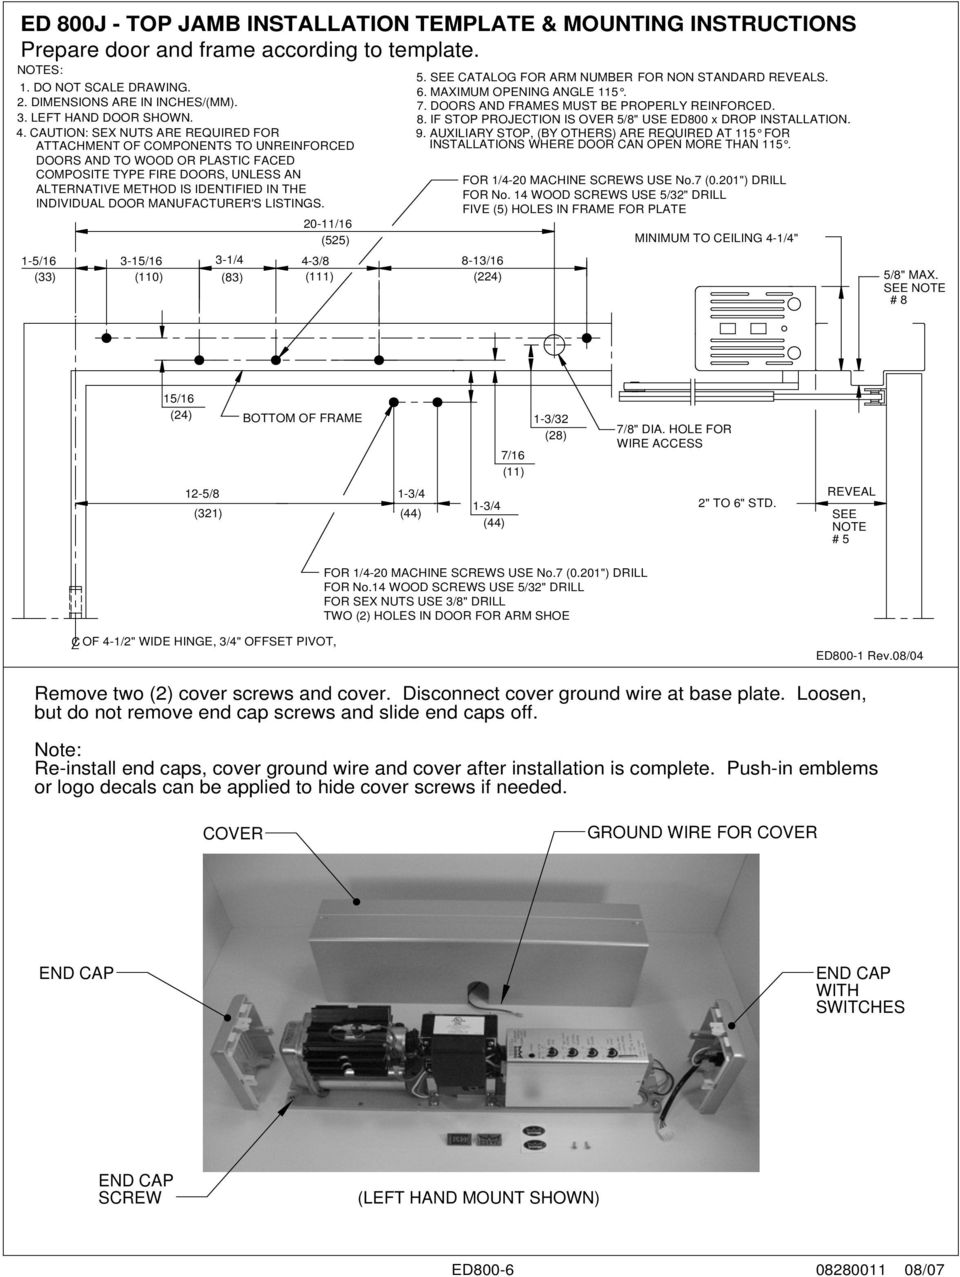 Dorma Ed 800 Series Service Manual Pdf 300 Key Switch Wiring Diagram If Stop Projection Is Over 5 8 Use Ed800 X Drop Installation 4